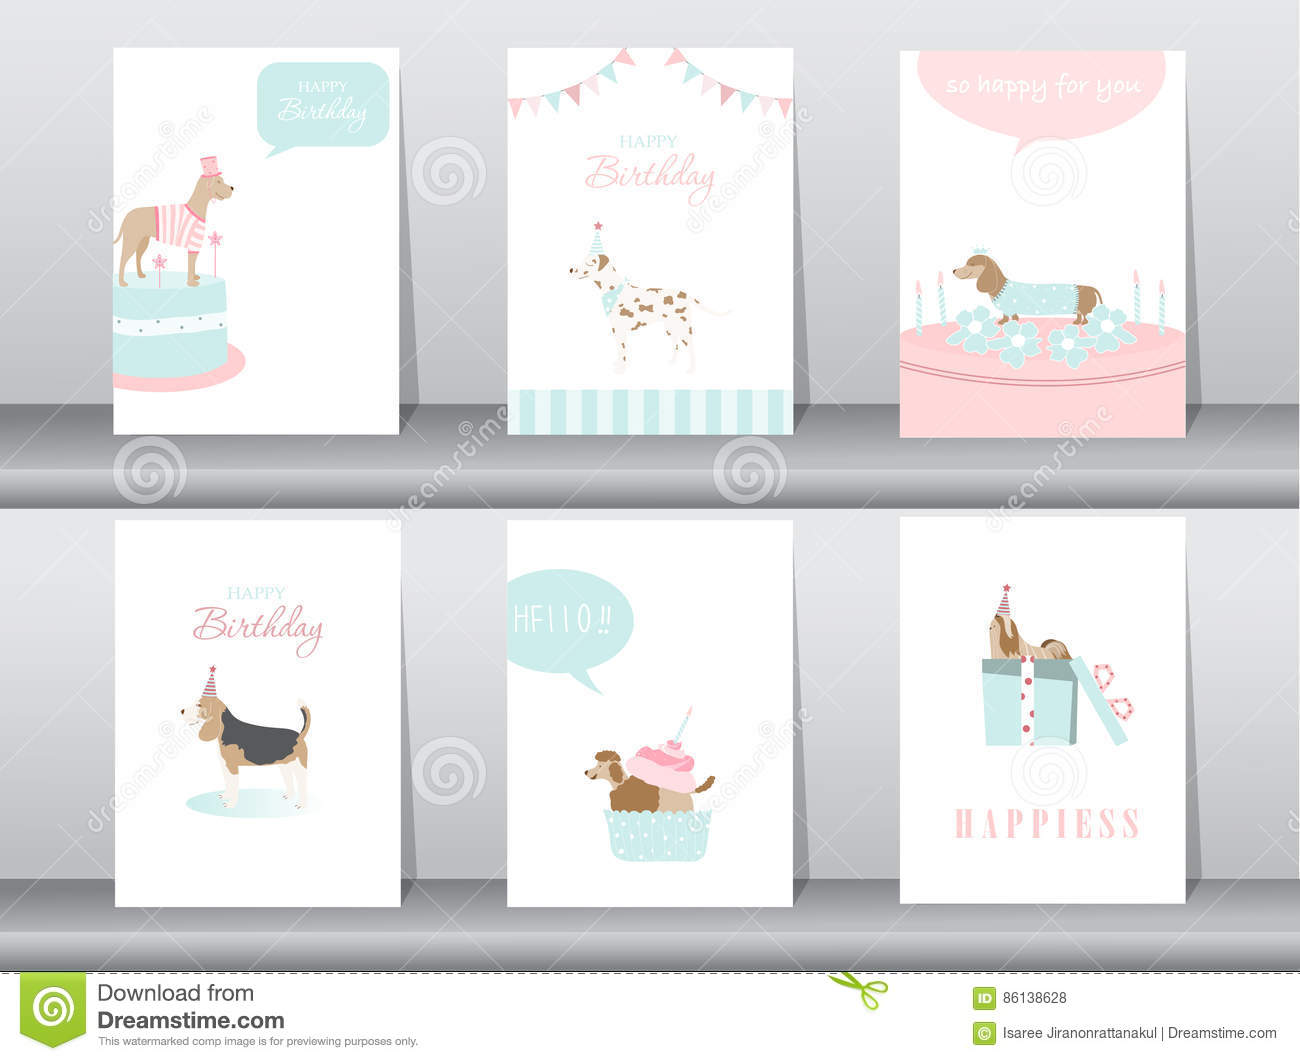 set of birthday invitations cards poster greeting template animals dogs vector illustrations stock vector illustration of dalmatians baby 86138628